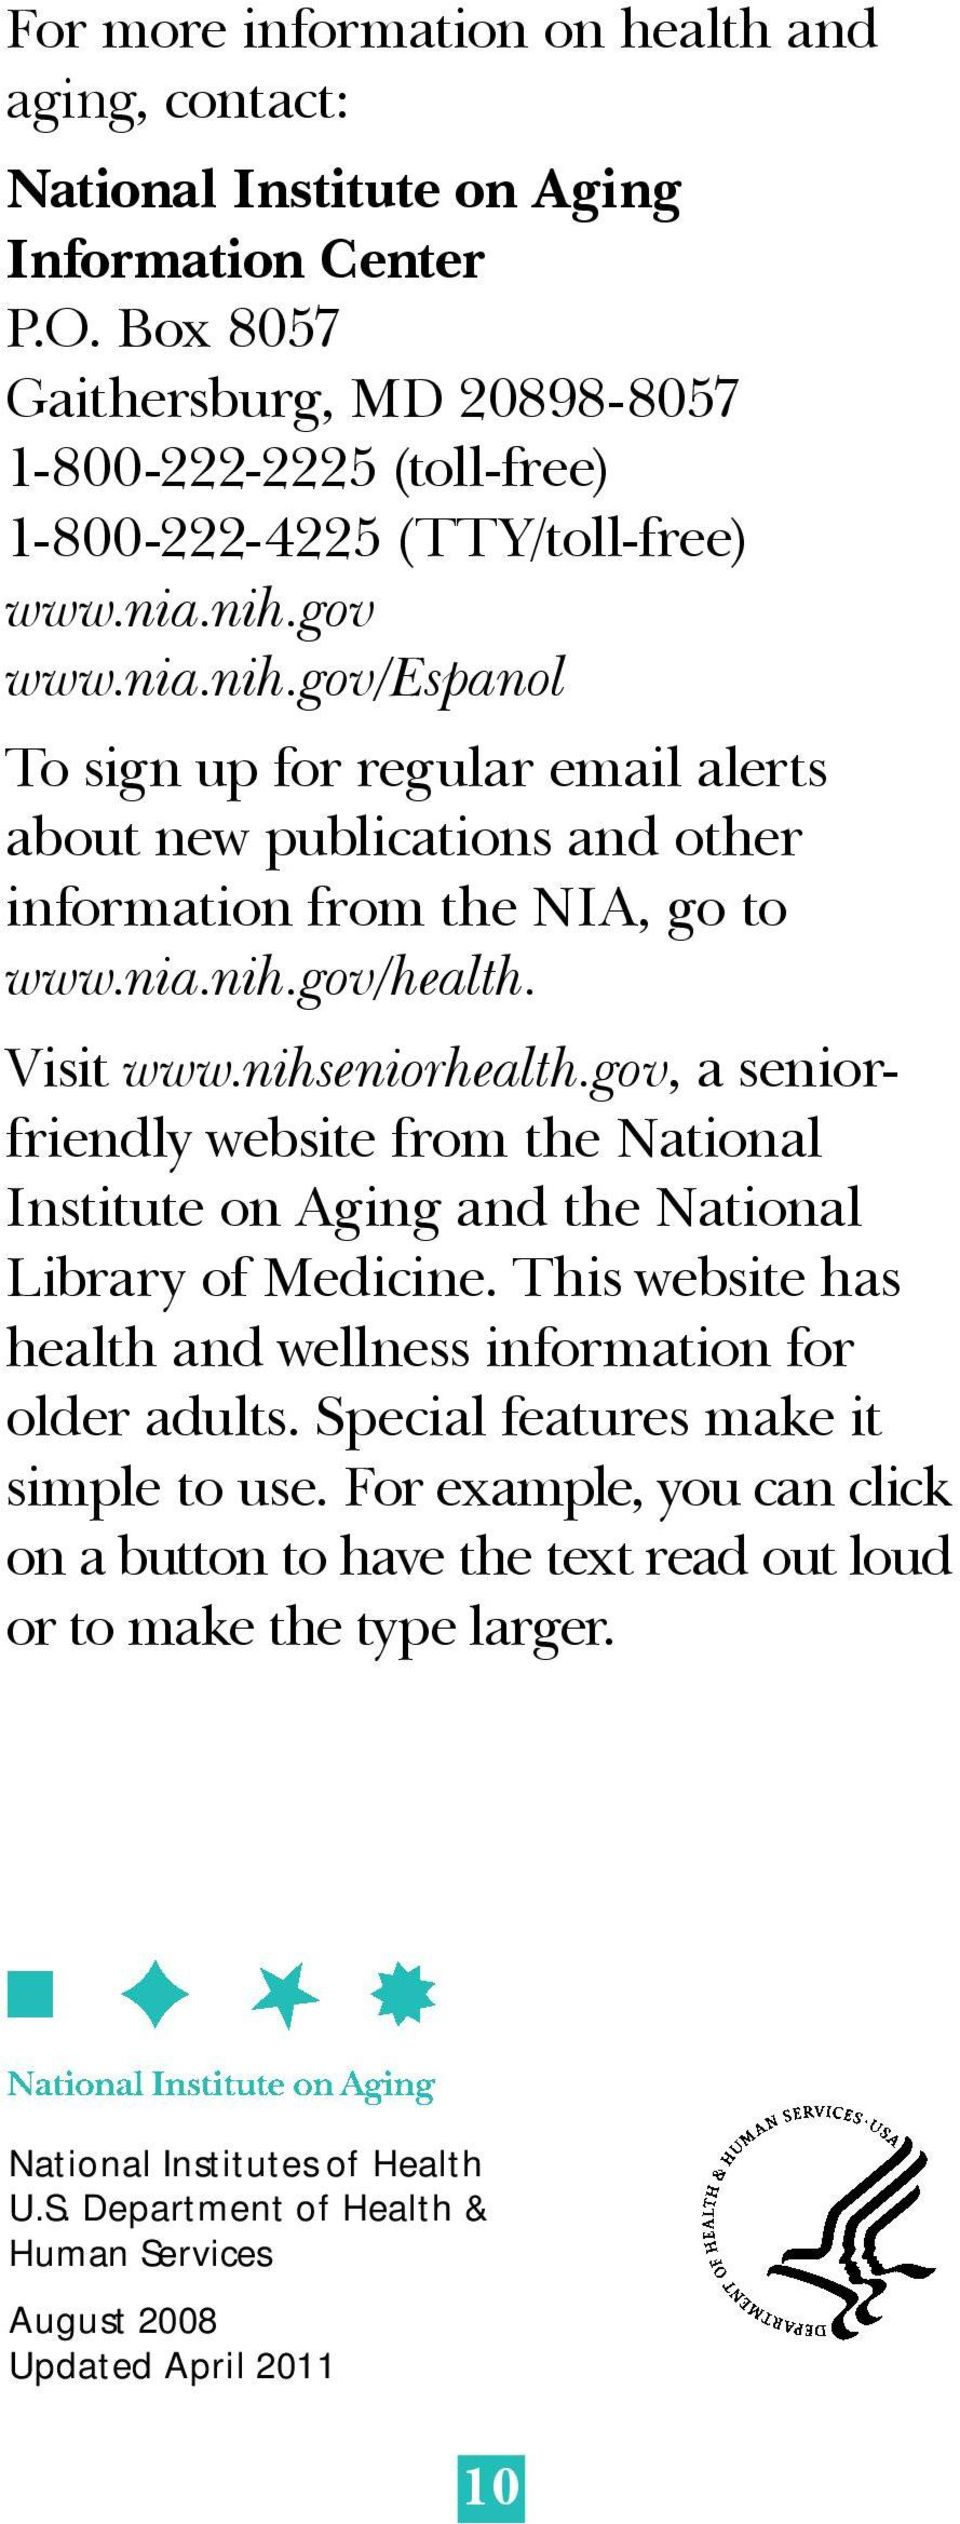 gov www.nia.nih.gov/espanol To sign up for regular email alerts about new publications and other information from the NIA, go to www.nia.nih.gov/health. Visit www.nihseniorhealth.